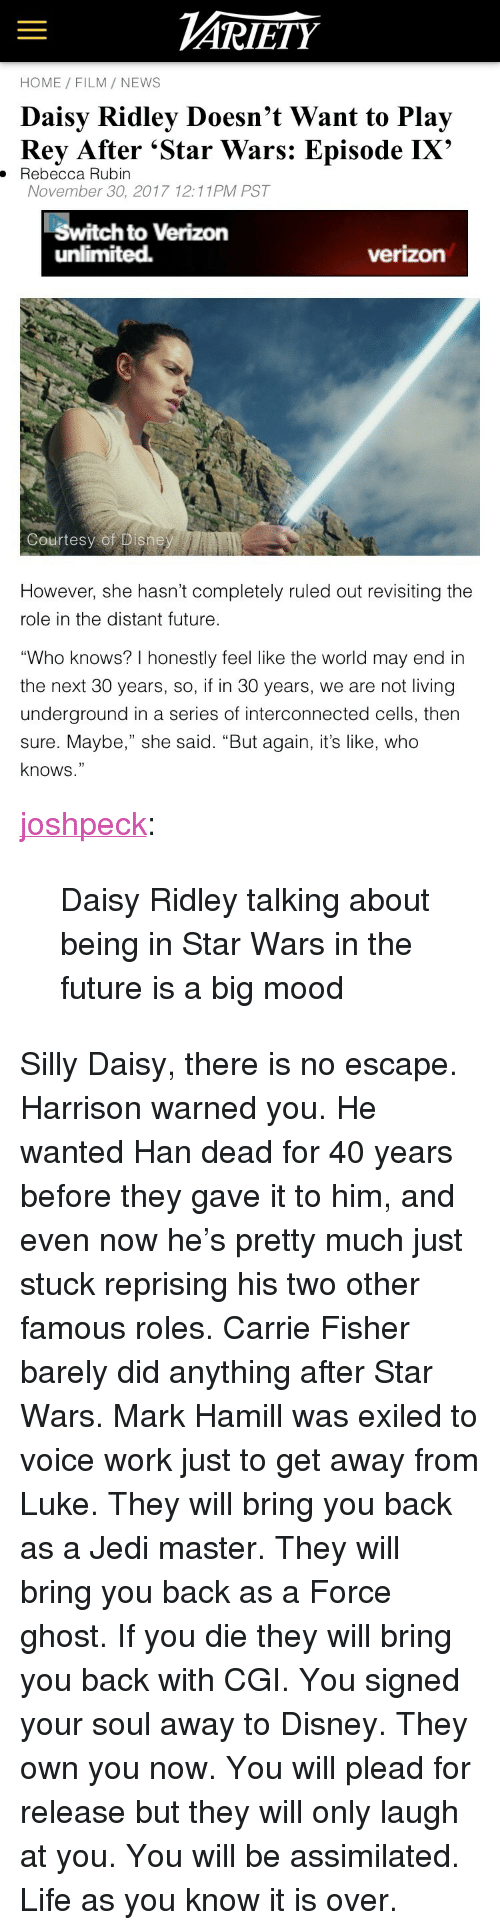 """Rubin: ARİETY  HOME FILM/ NEWS  Daisy Ridley Doesn't Want to Play  Rey After 'Star Wars: Episode IX'  . Rebecca Rubin  November 30, 2017 12:11PM PST  Switch to Verizon  unlimited.  verizon  Courtesy of Disne   However, she hasn't completely ruled out revisiting the  role in the distant future  """"Who knows? I honestly feel like the world may end in  the next 30 years, so, if in 30 years, we are not living  underground in a series of interconnected cells, then  sure. Maybe,"""" she said. """"But again, it's like, who  knows."""" <p><a href=""""http://joshpeckofficial.com/post/168948838043/daisy-ridley-talking-about-being-in-star-wars-in"""" class=""""tumblr_blog"""">joshpeck</a>:</p>  <blockquote><p>Daisy Ridley talking about being in Star Wars in the future is a big mood</p></blockquote>  <p>Silly Daisy, there is no escape. Harrison warned you. He wanted Han dead for 40 years before they gave it to him, and even now he's pretty much just stuck reprising his two other famous roles. Carrie Fisher barely did anything after Star Wars. Mark Hamill was exiled to voice work just to get away from Luke. They will bring you back as a Jedi master. They will bring you back as a Force ghost. If you die they will bring you back with CGI. You signed your soul away to Disney. They own you now. You will plead for release but they will only laugh at you. You will be assimilated. Life as you know it is over.</p>"""